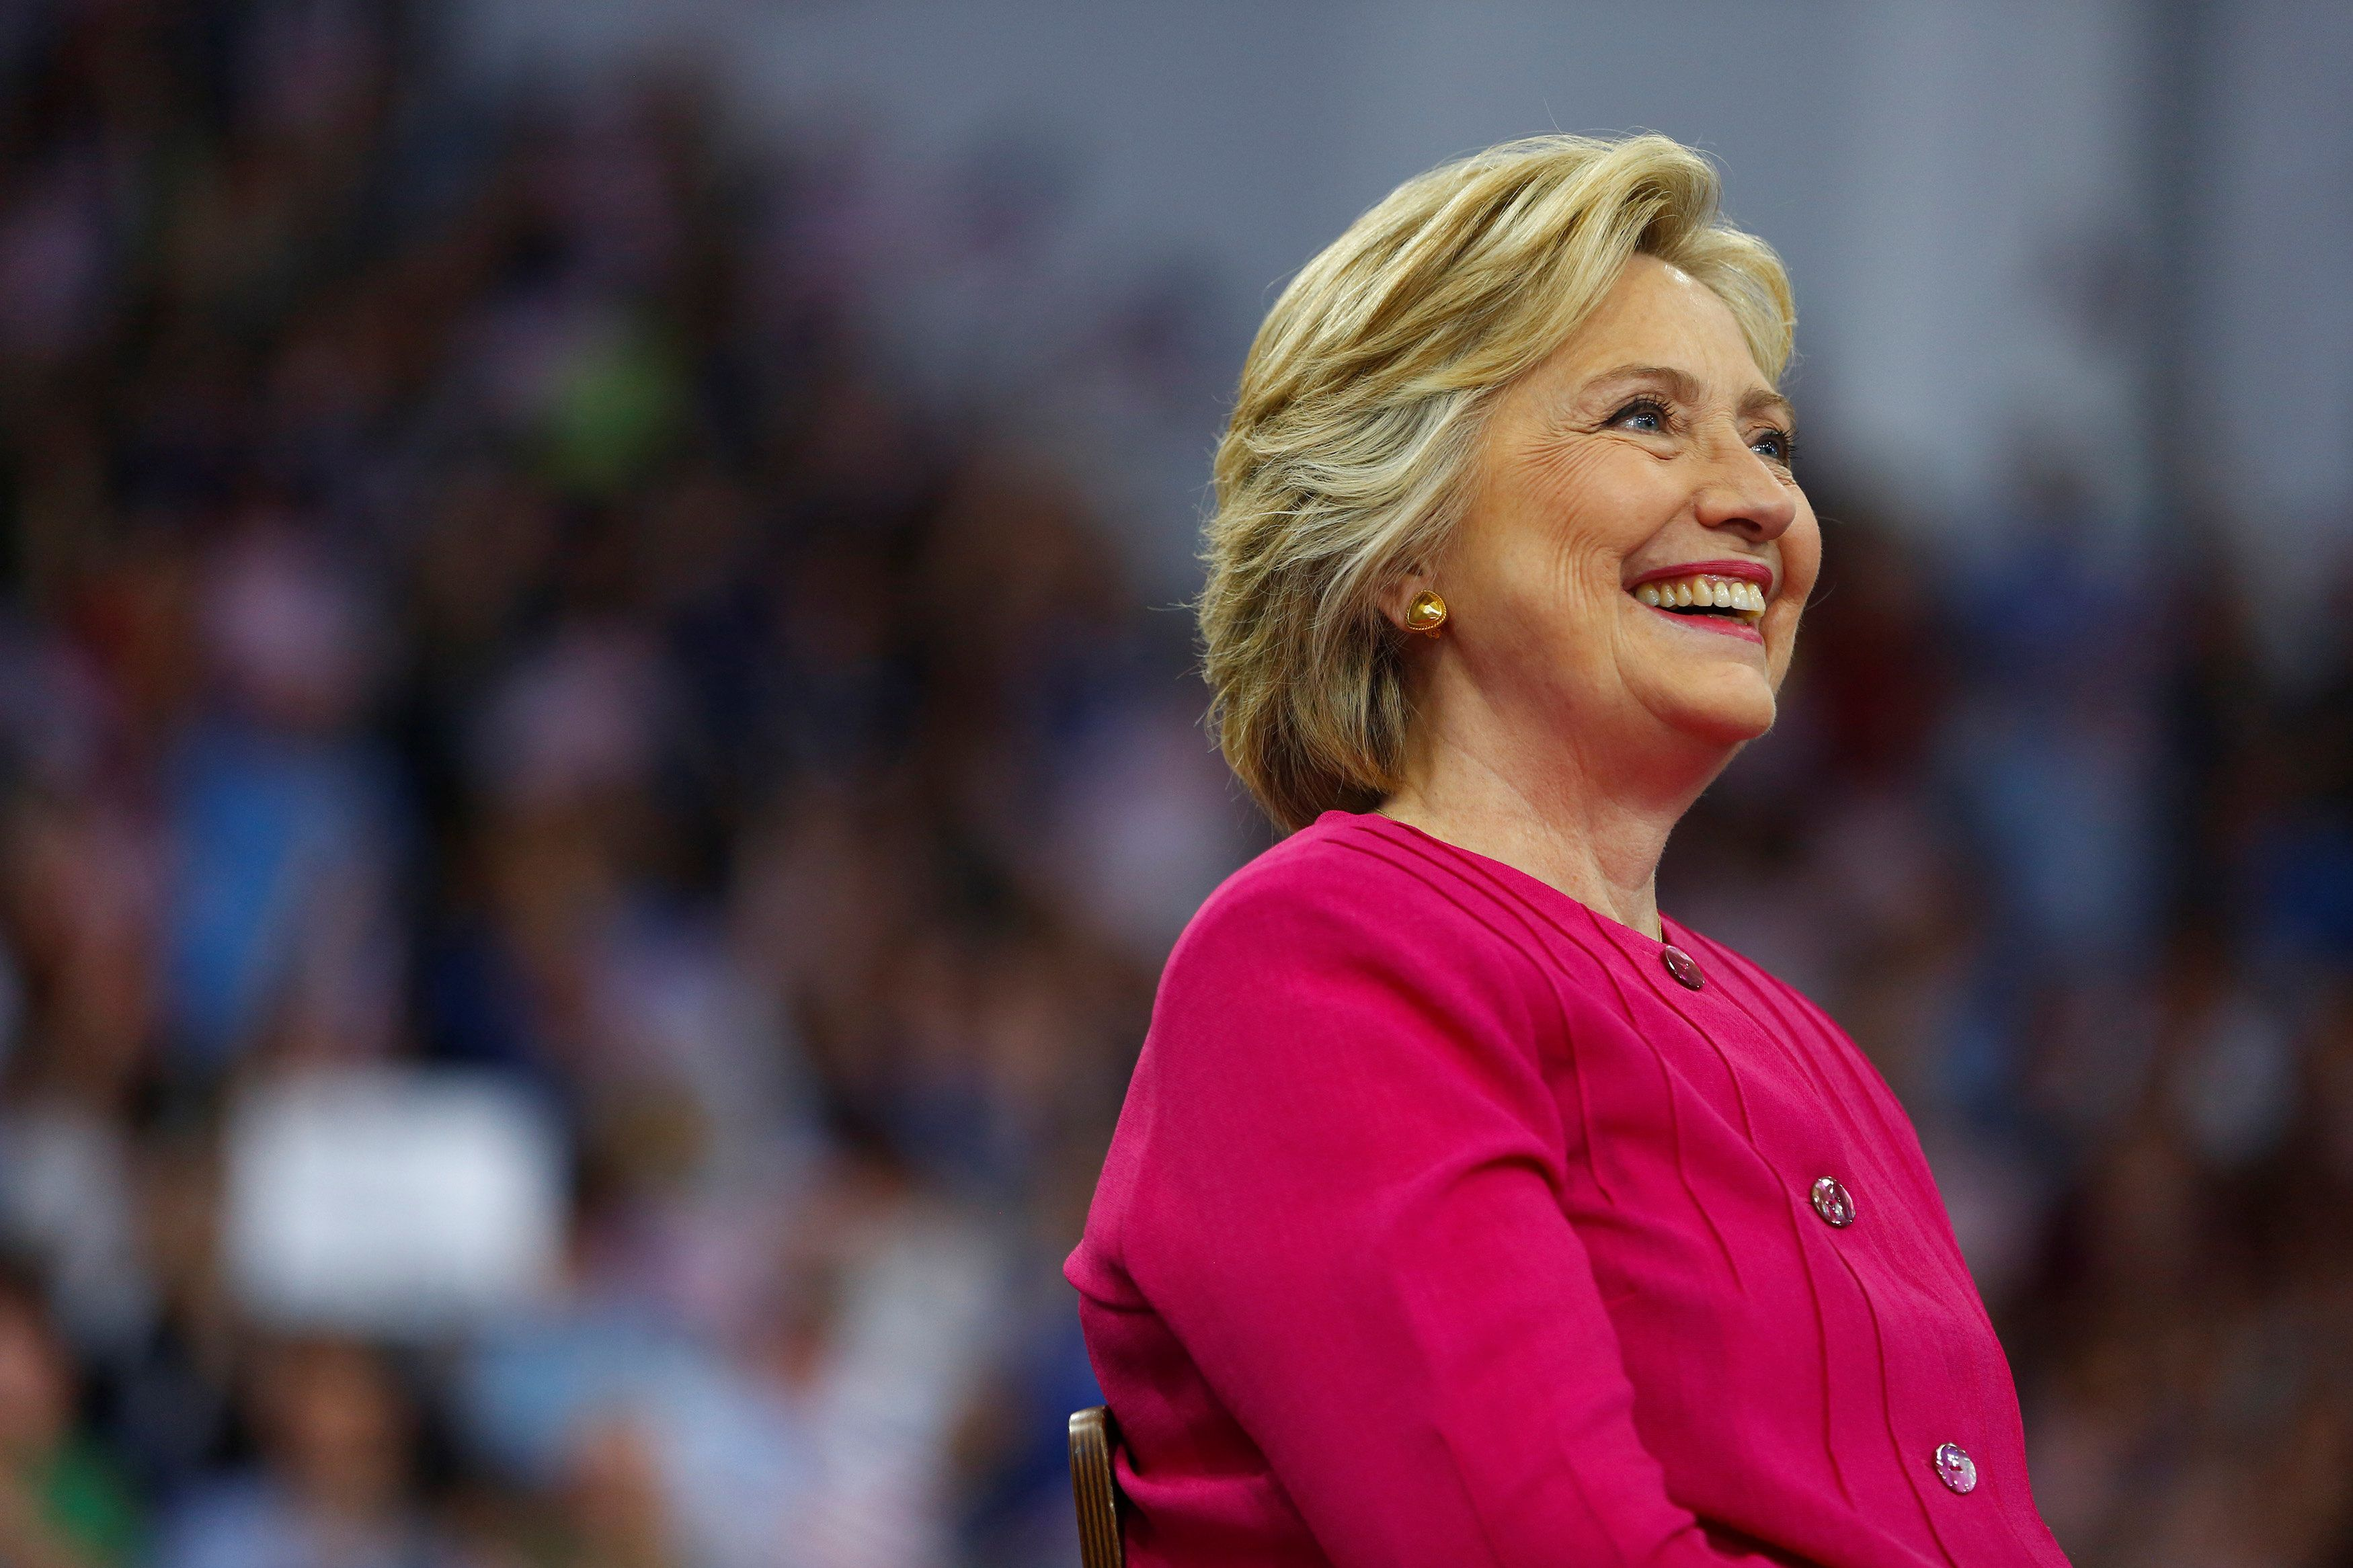 Clinton Campaign Also Hacked In Attacks On Democrats: